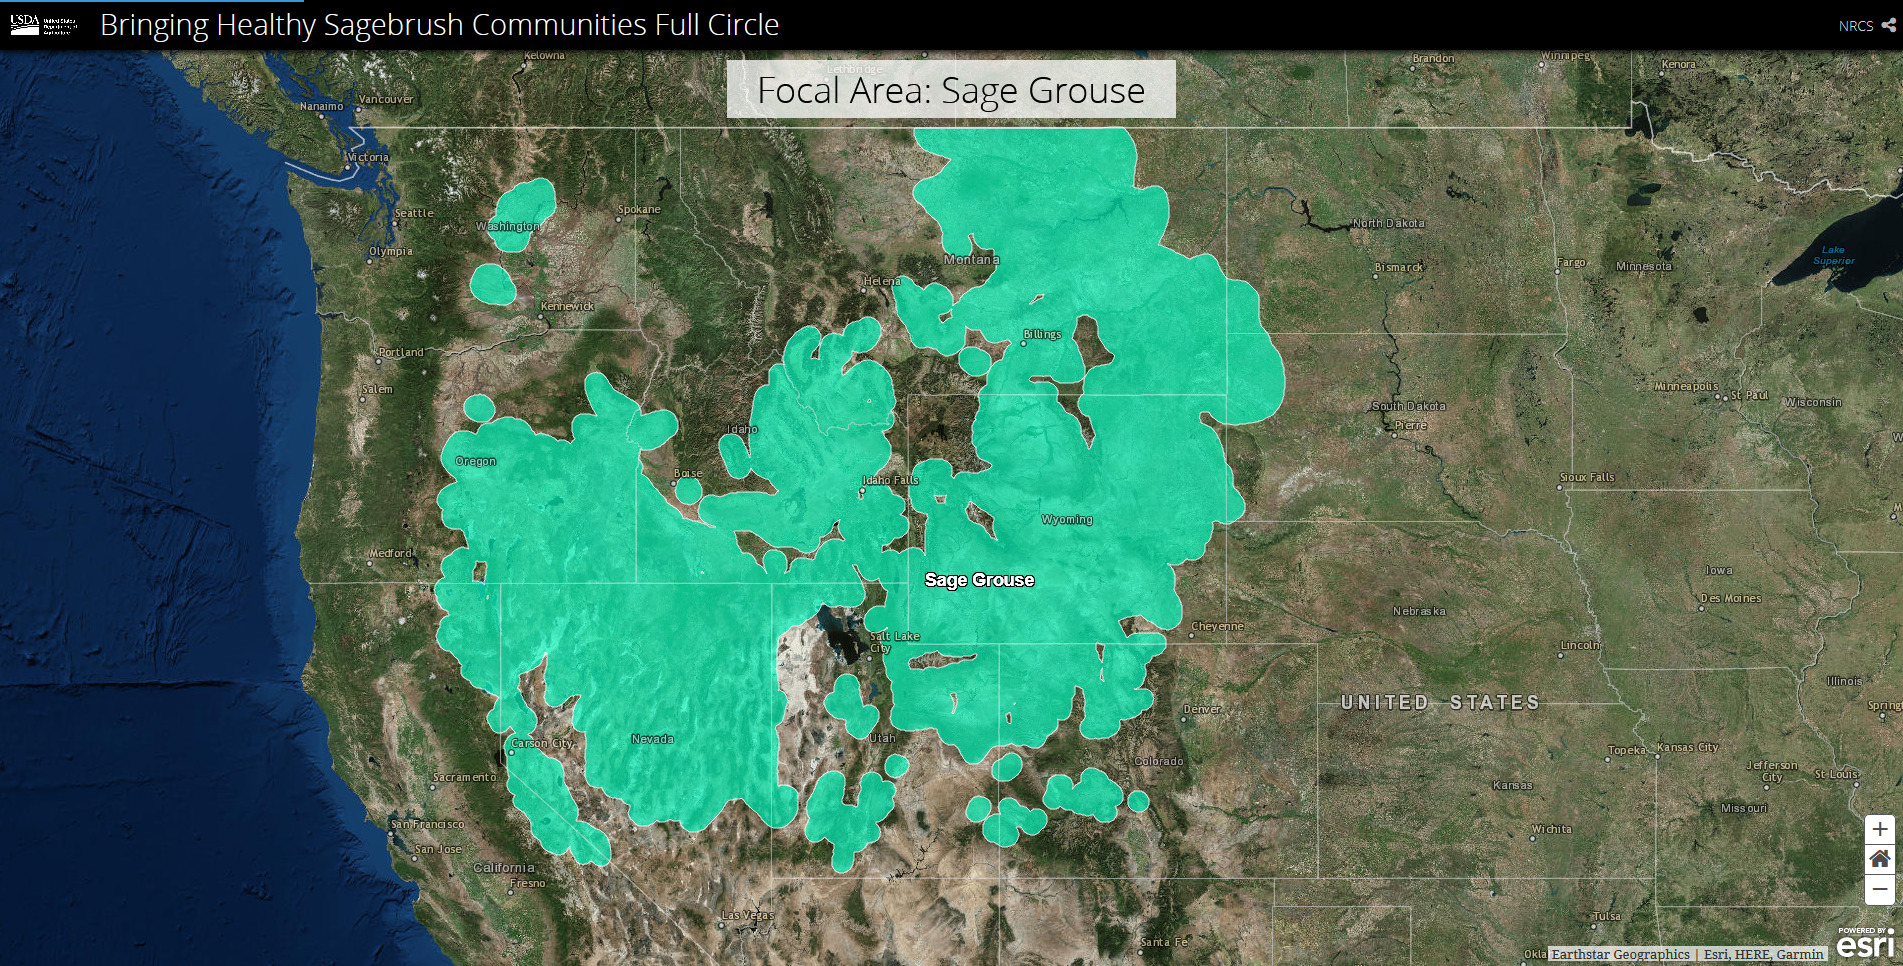 Screenshot_2018-11-08 Bringing Healthy Sagebrush Communities Full Circle